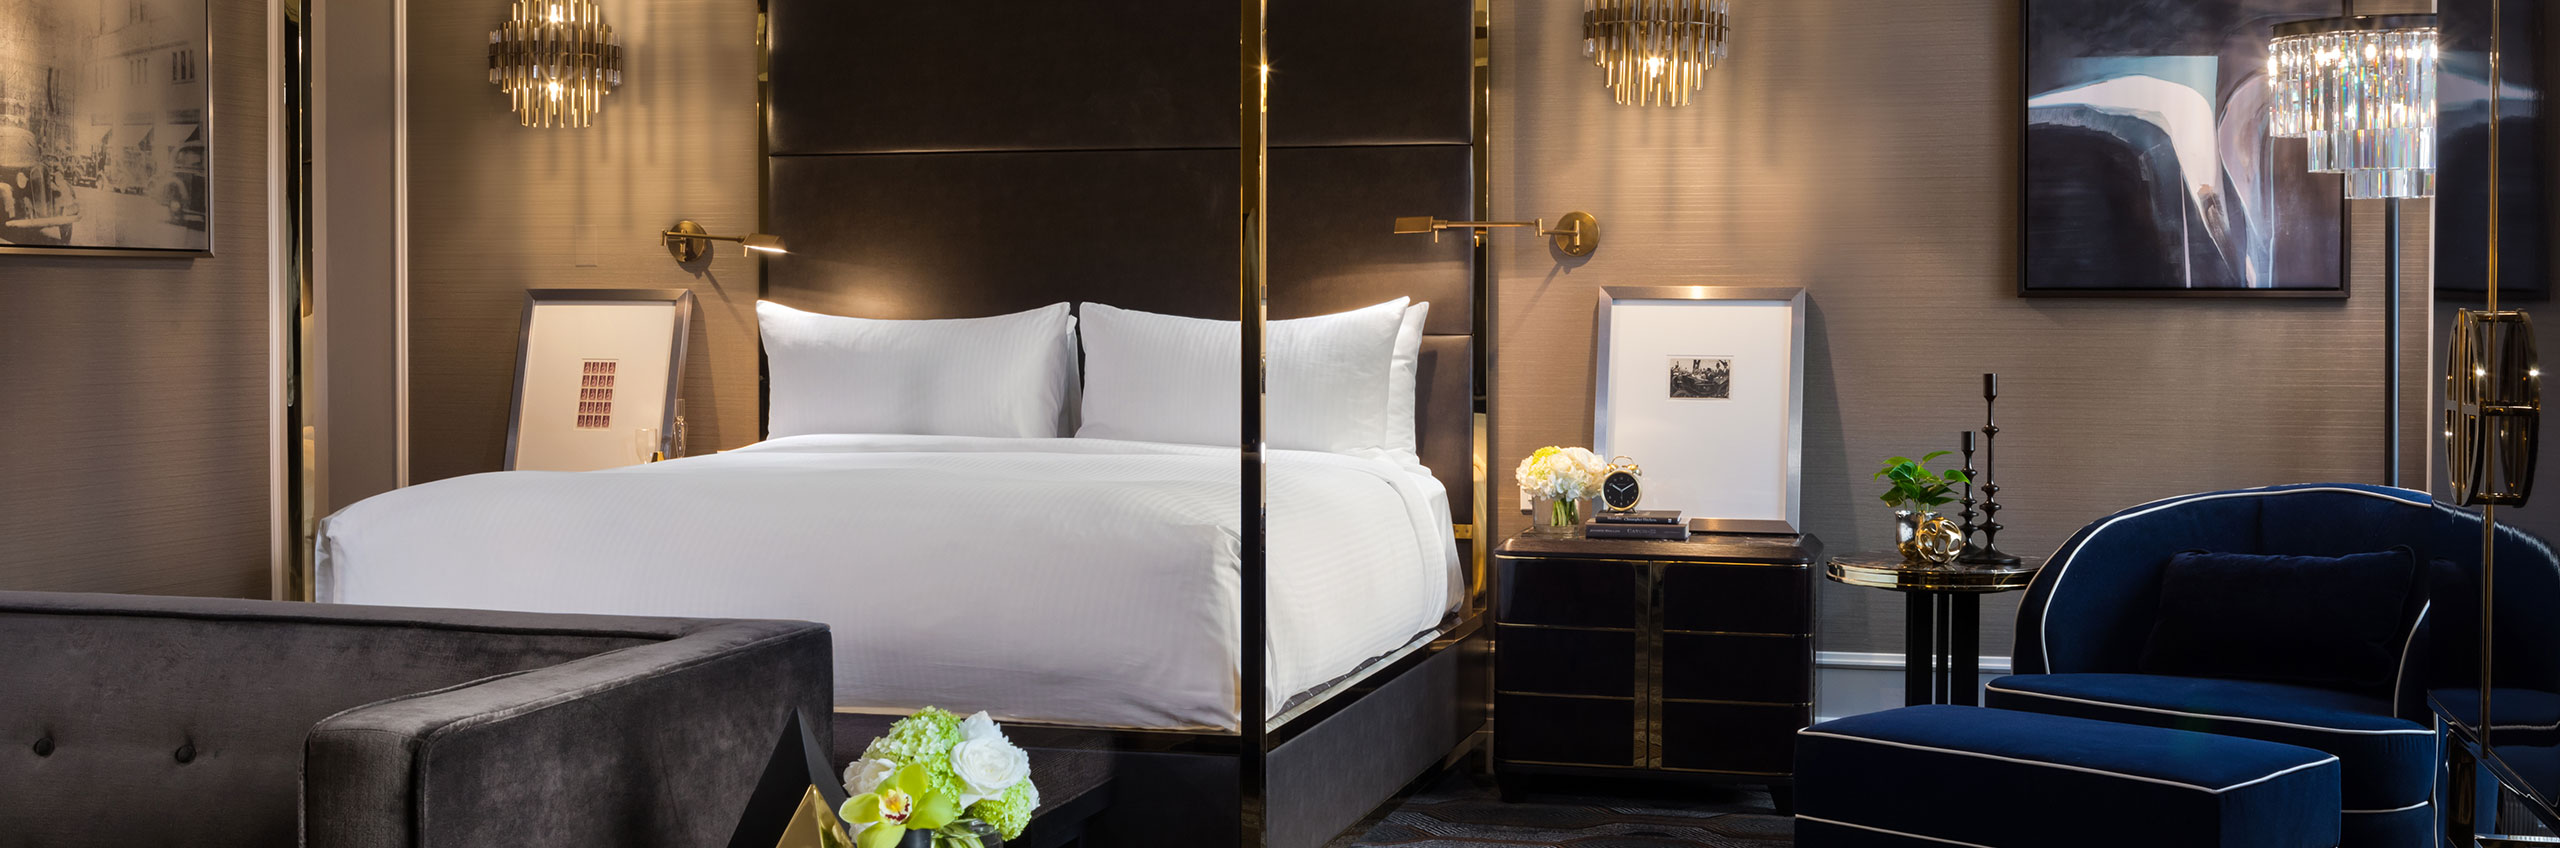 Manufacturing Premium and Custom Casegoods for Hotels by BERMANFALK